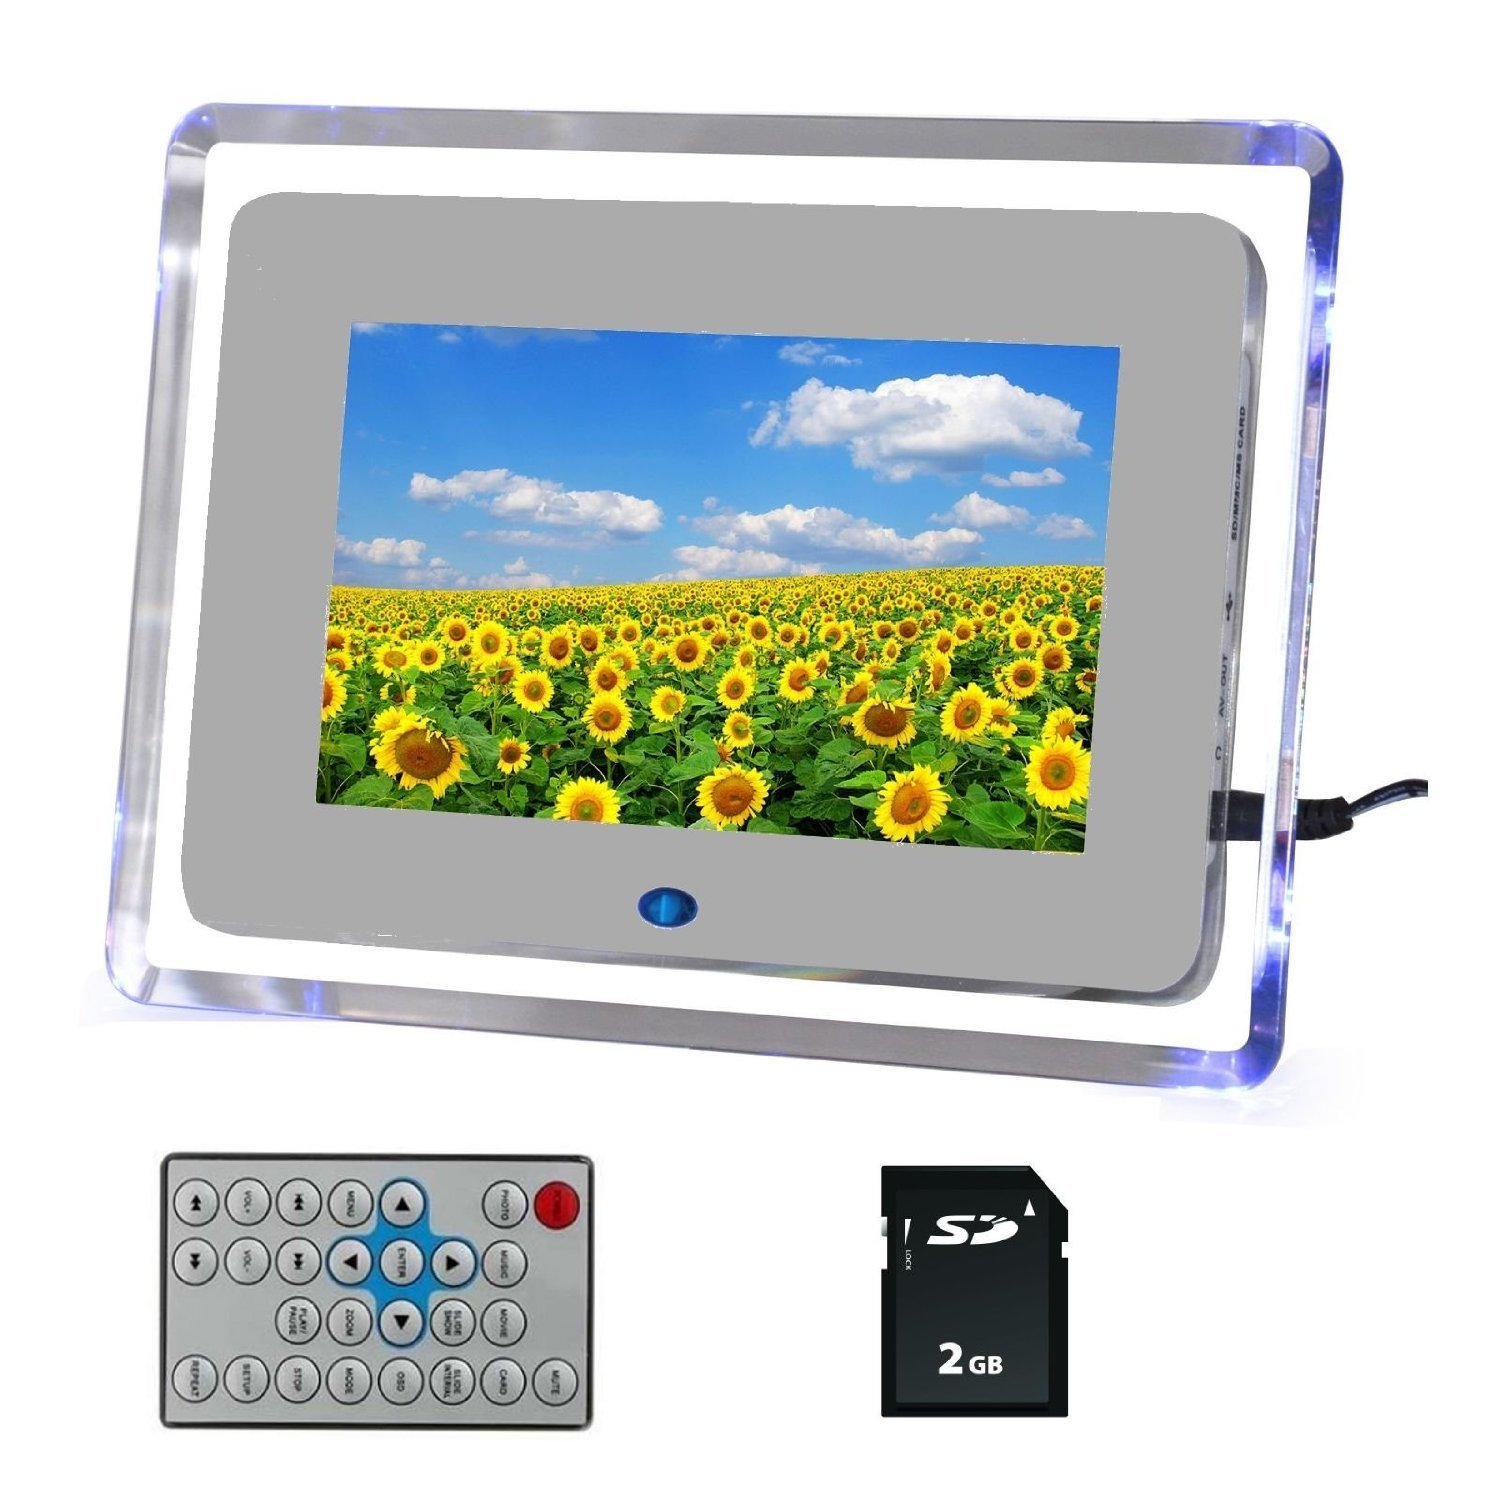 Buwico® Digital Photo Picture Video Frame White Blue Light Includes 2GB SD Card & Remote Control & Mains Charger